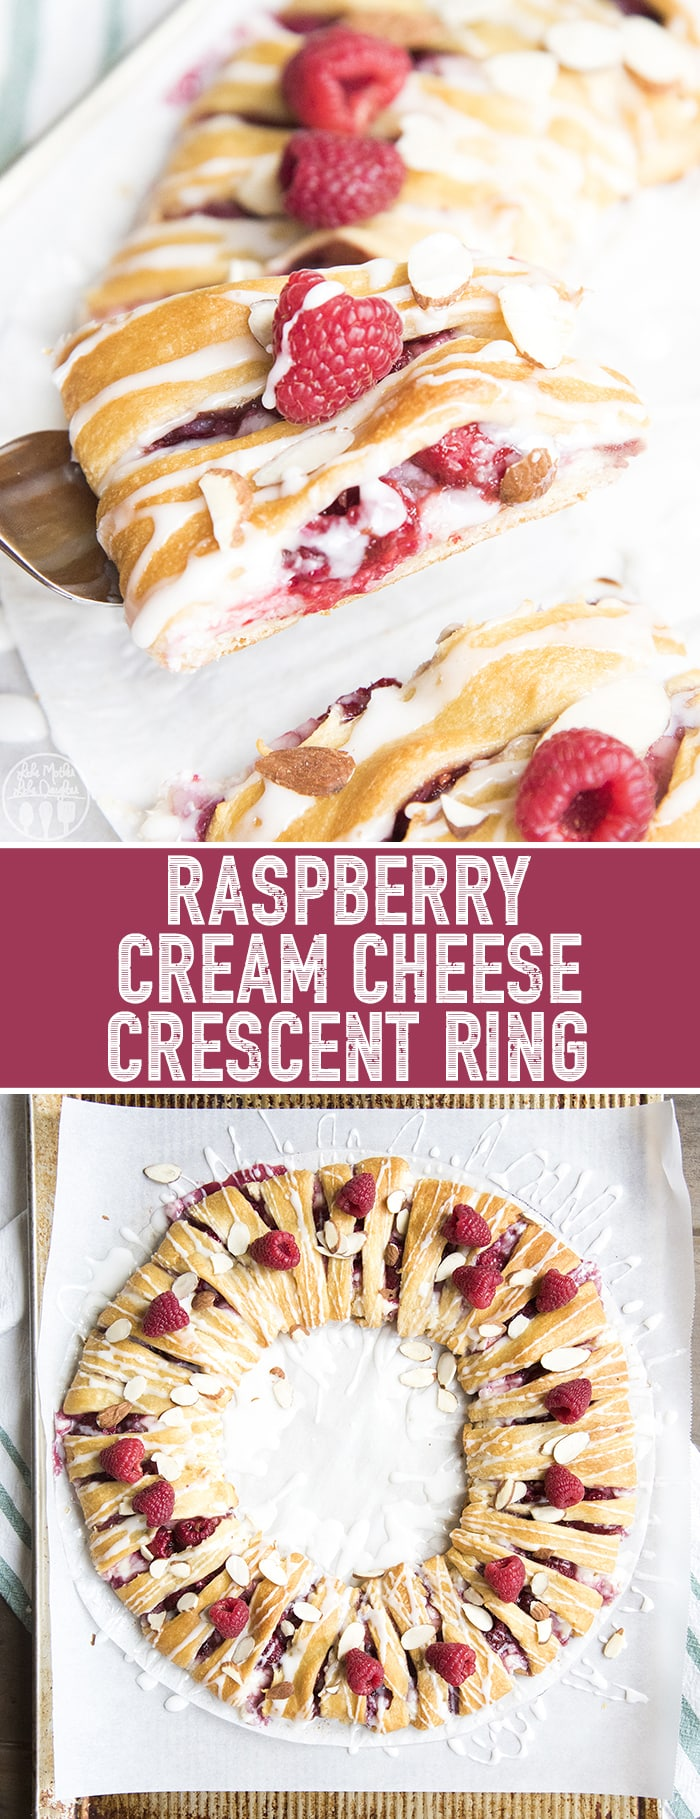 This raspberry cream cheese crescent ring is the perfect holiday breakfast! It's ready in only about 30 minutes, and is such a beautiful dish!